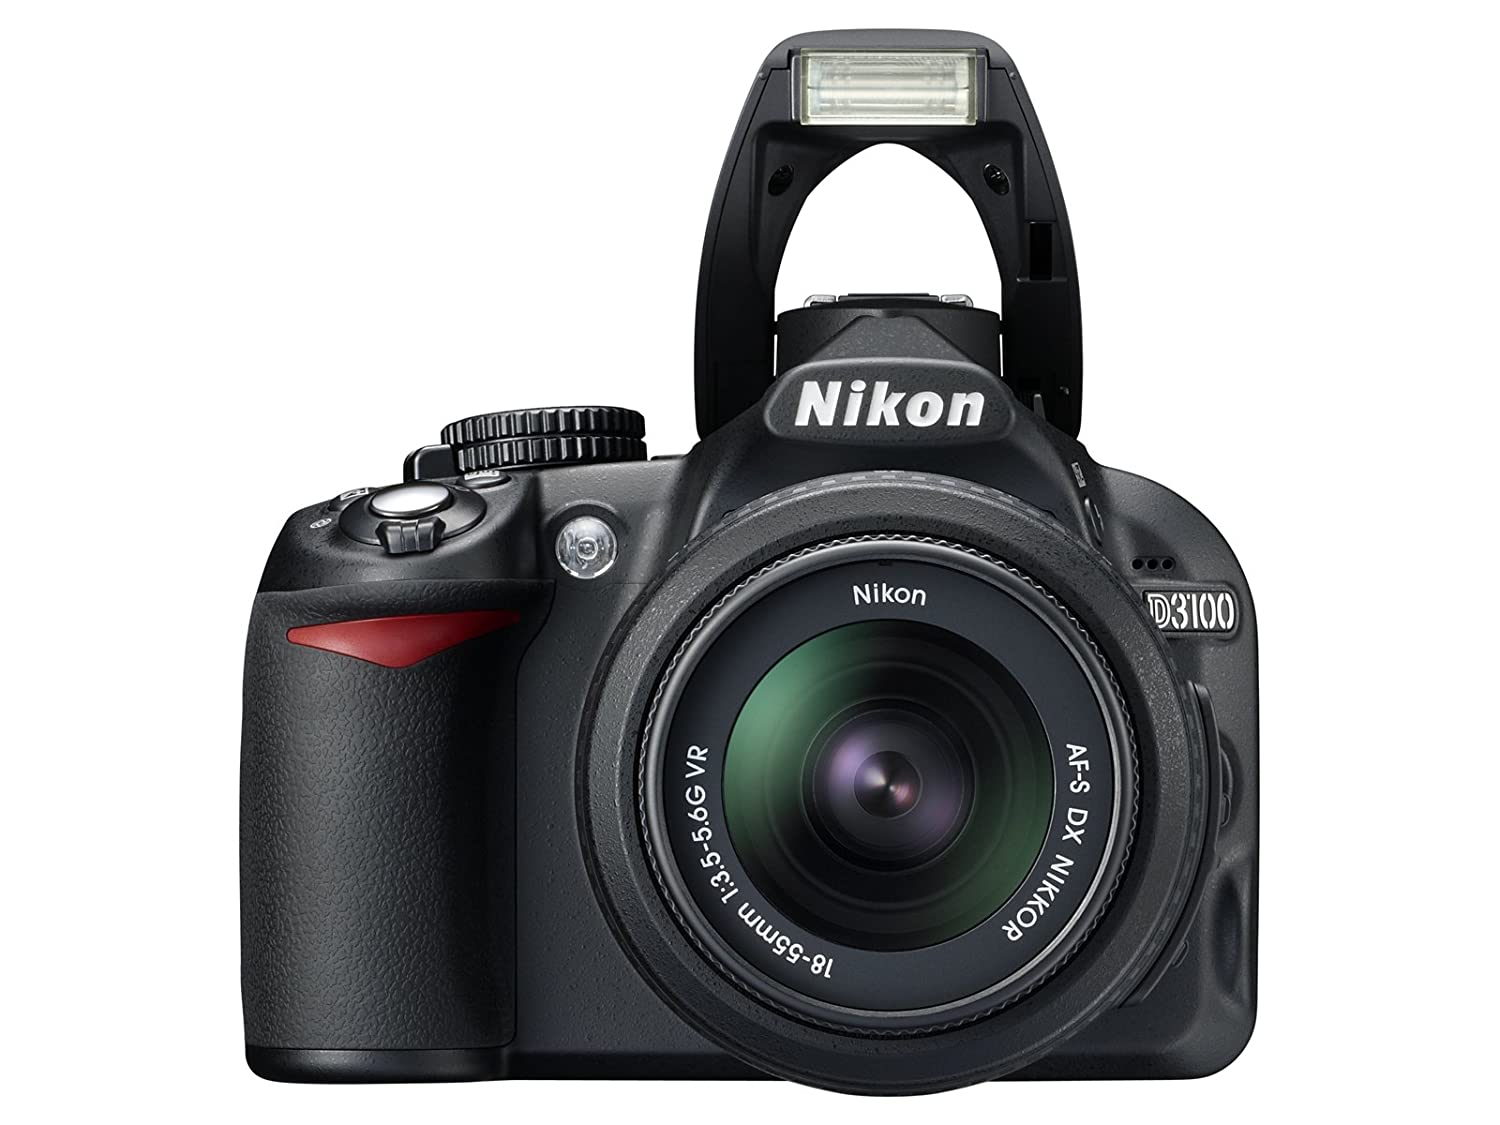 Camera D3100 Dslr Camera Review amazon com nikon d3100 dslr camera with 18 55mm f3 5 6 auto focus s nikkor zoom lens discontinued by manufacturer camera